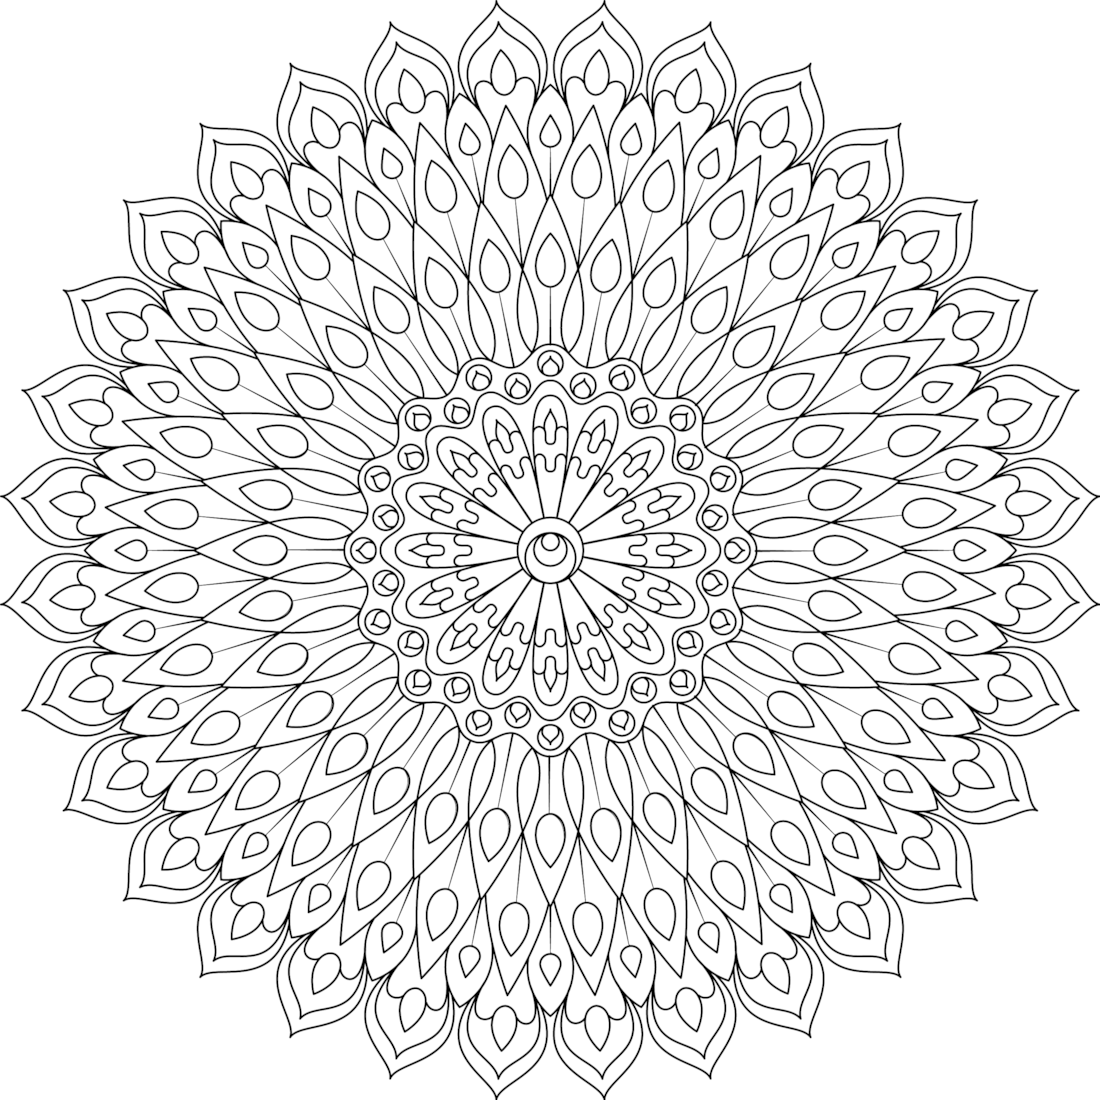 Picture of Youthful Inspiration coloring page